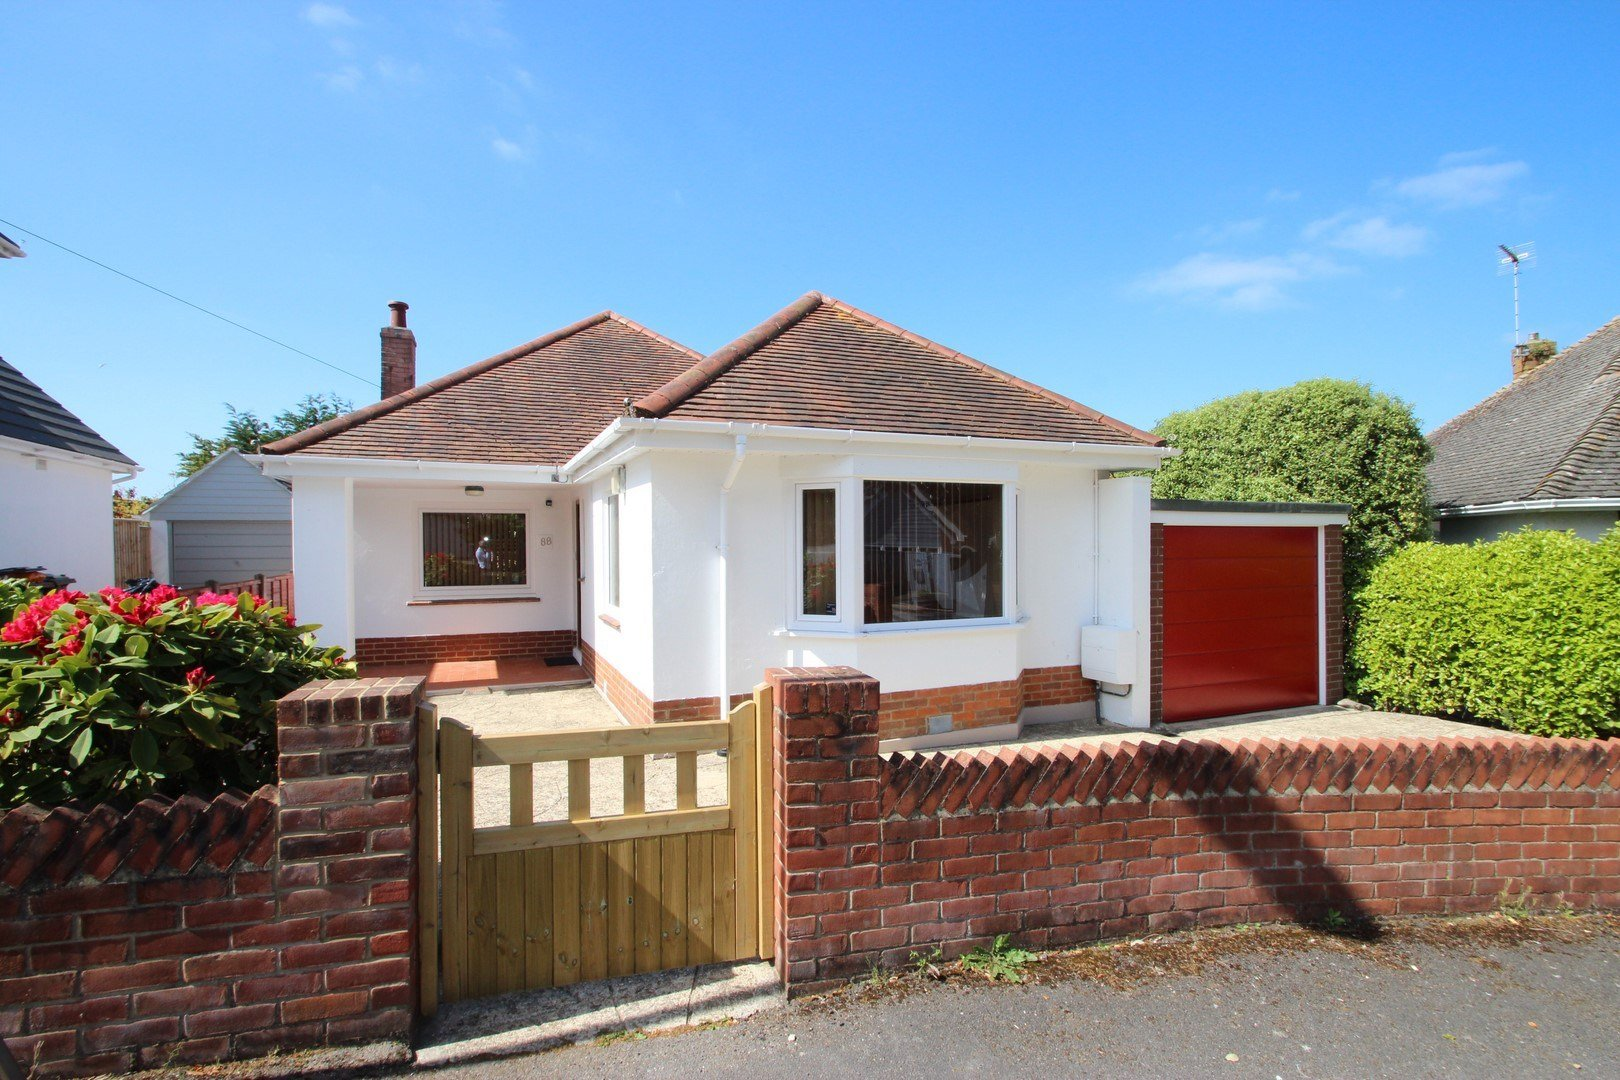 Best 2 Bedroom Bungalow In Mudeford – Estate Agents Mudeford With Pictures